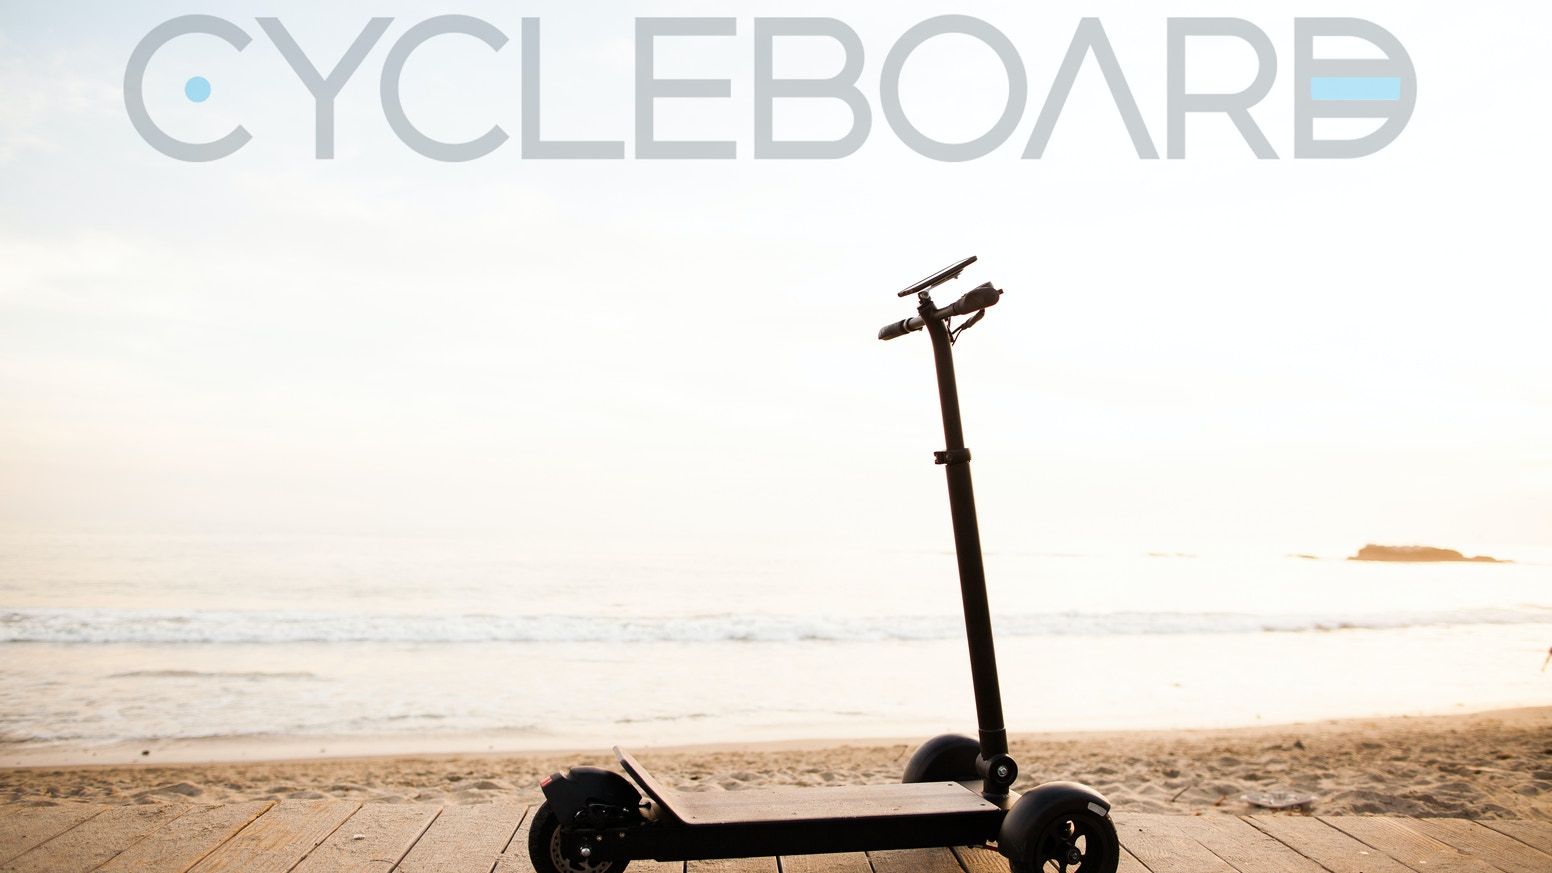 This 20-mph Electric Scooter's intuitive lean-to-steer system and stable design make it the perfect scooter for riders of all ages